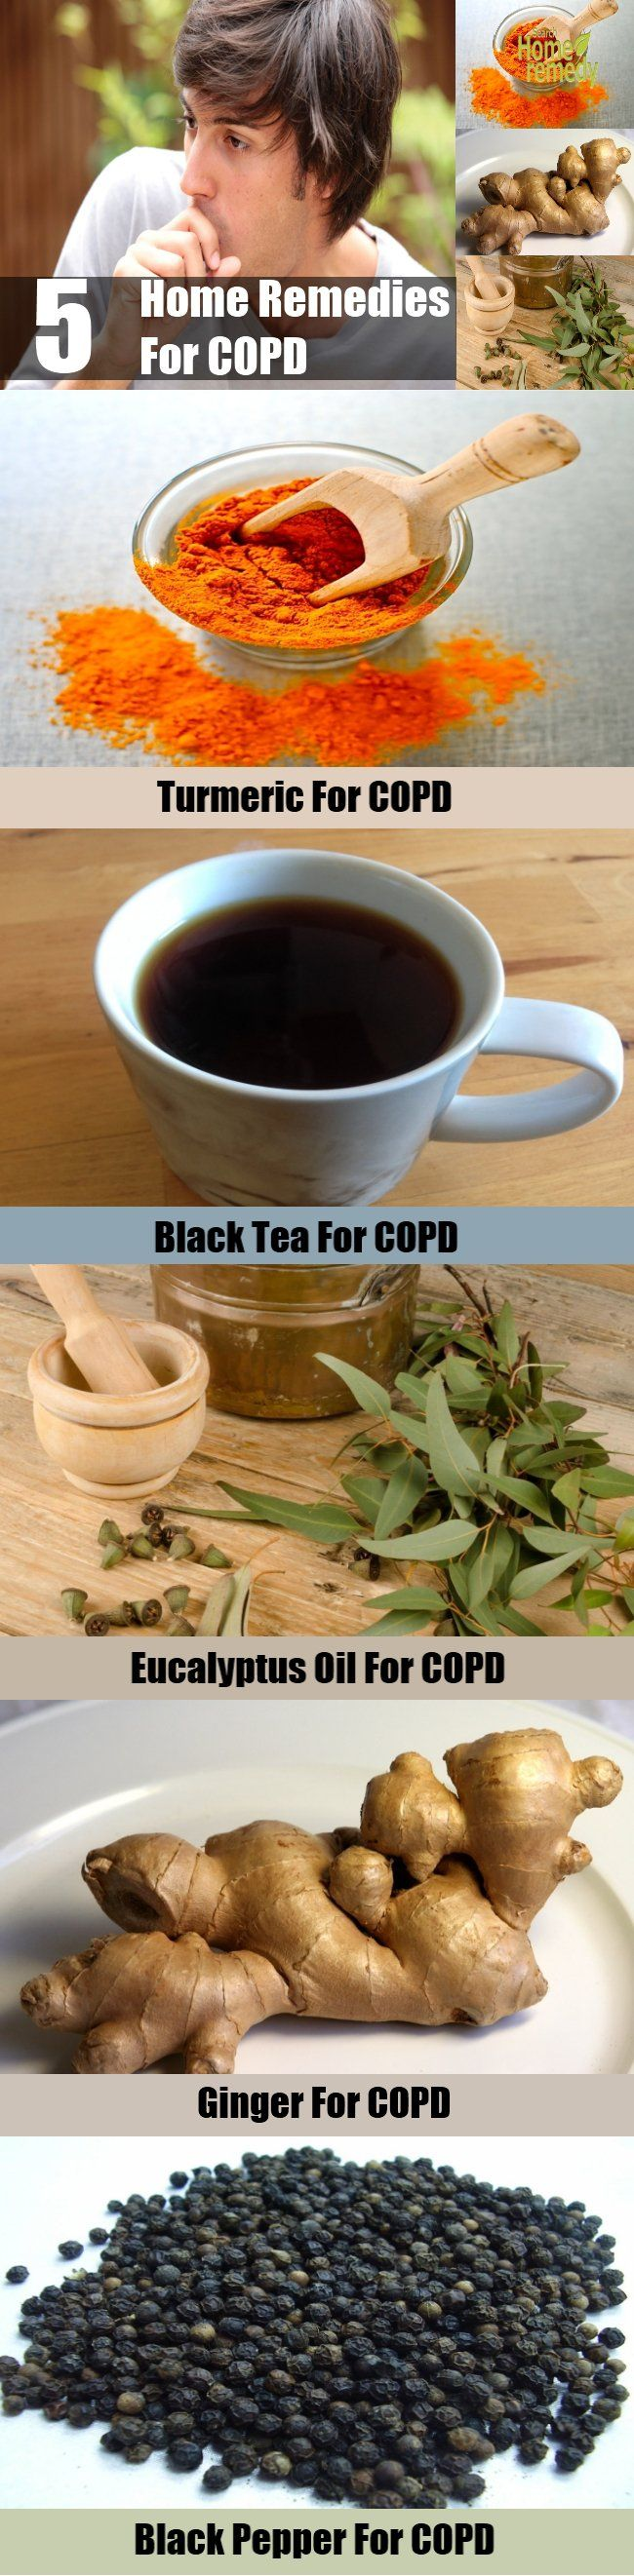 5 Effective Home Remedies For COPD                                                                                                                                                                                 More